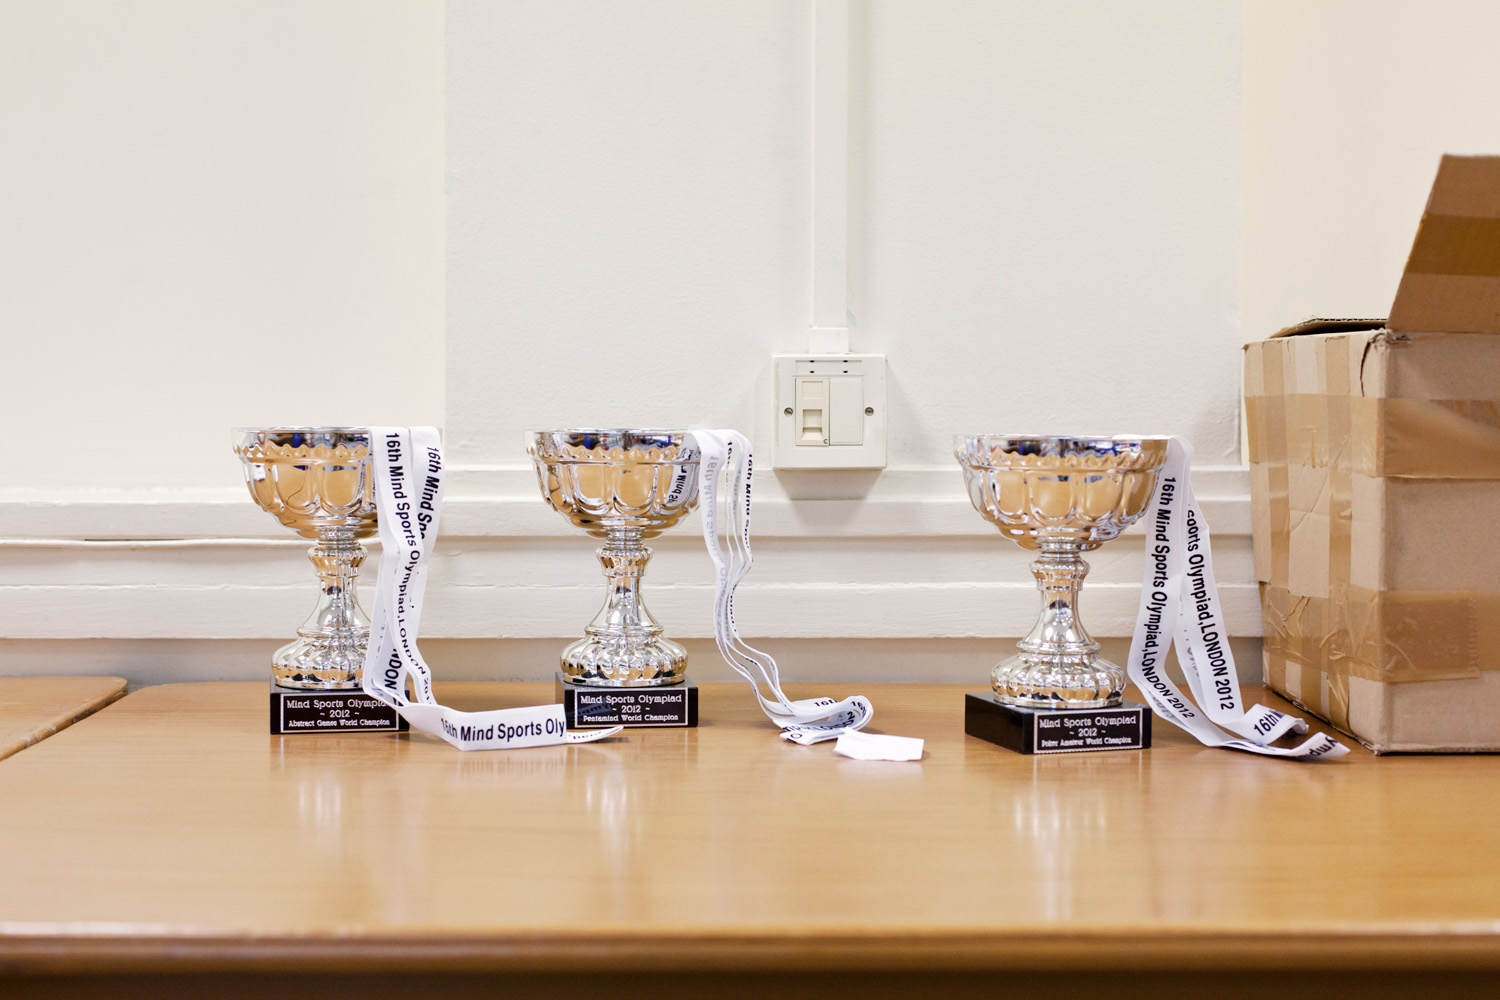 Trophies for the 2012 Mind Sports Olympiad